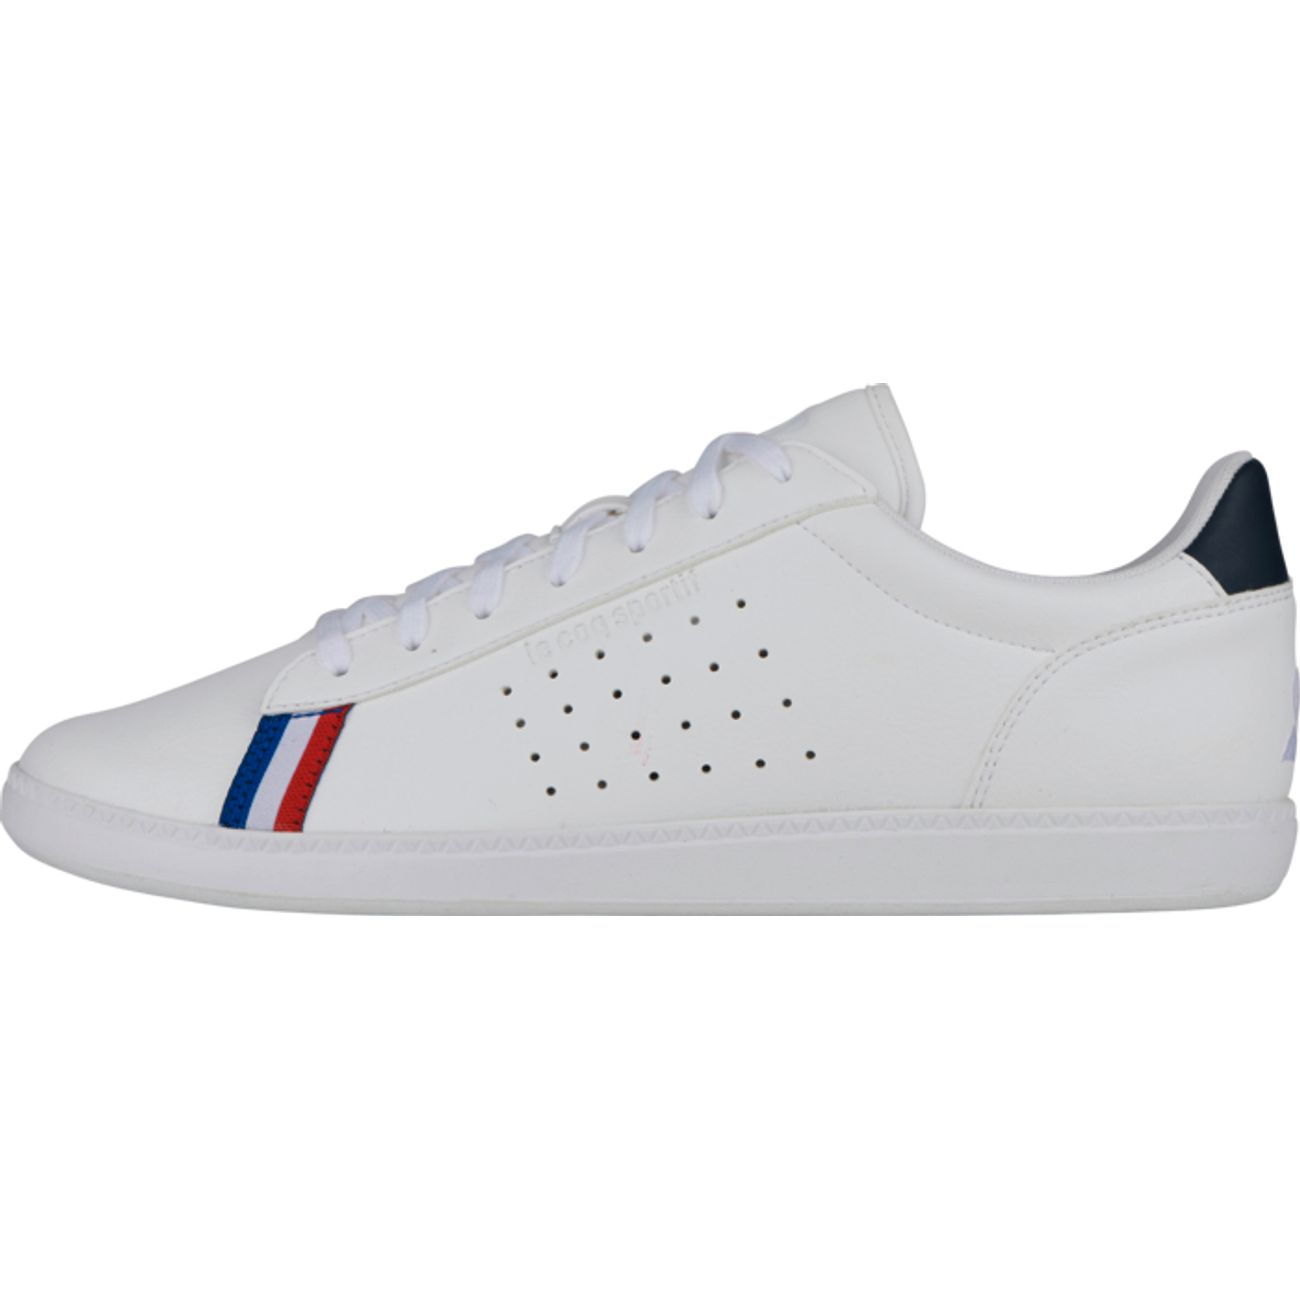 CHAUSSURES BASSES Loisirs homme LE COQ SPORTIF COURTSTAR